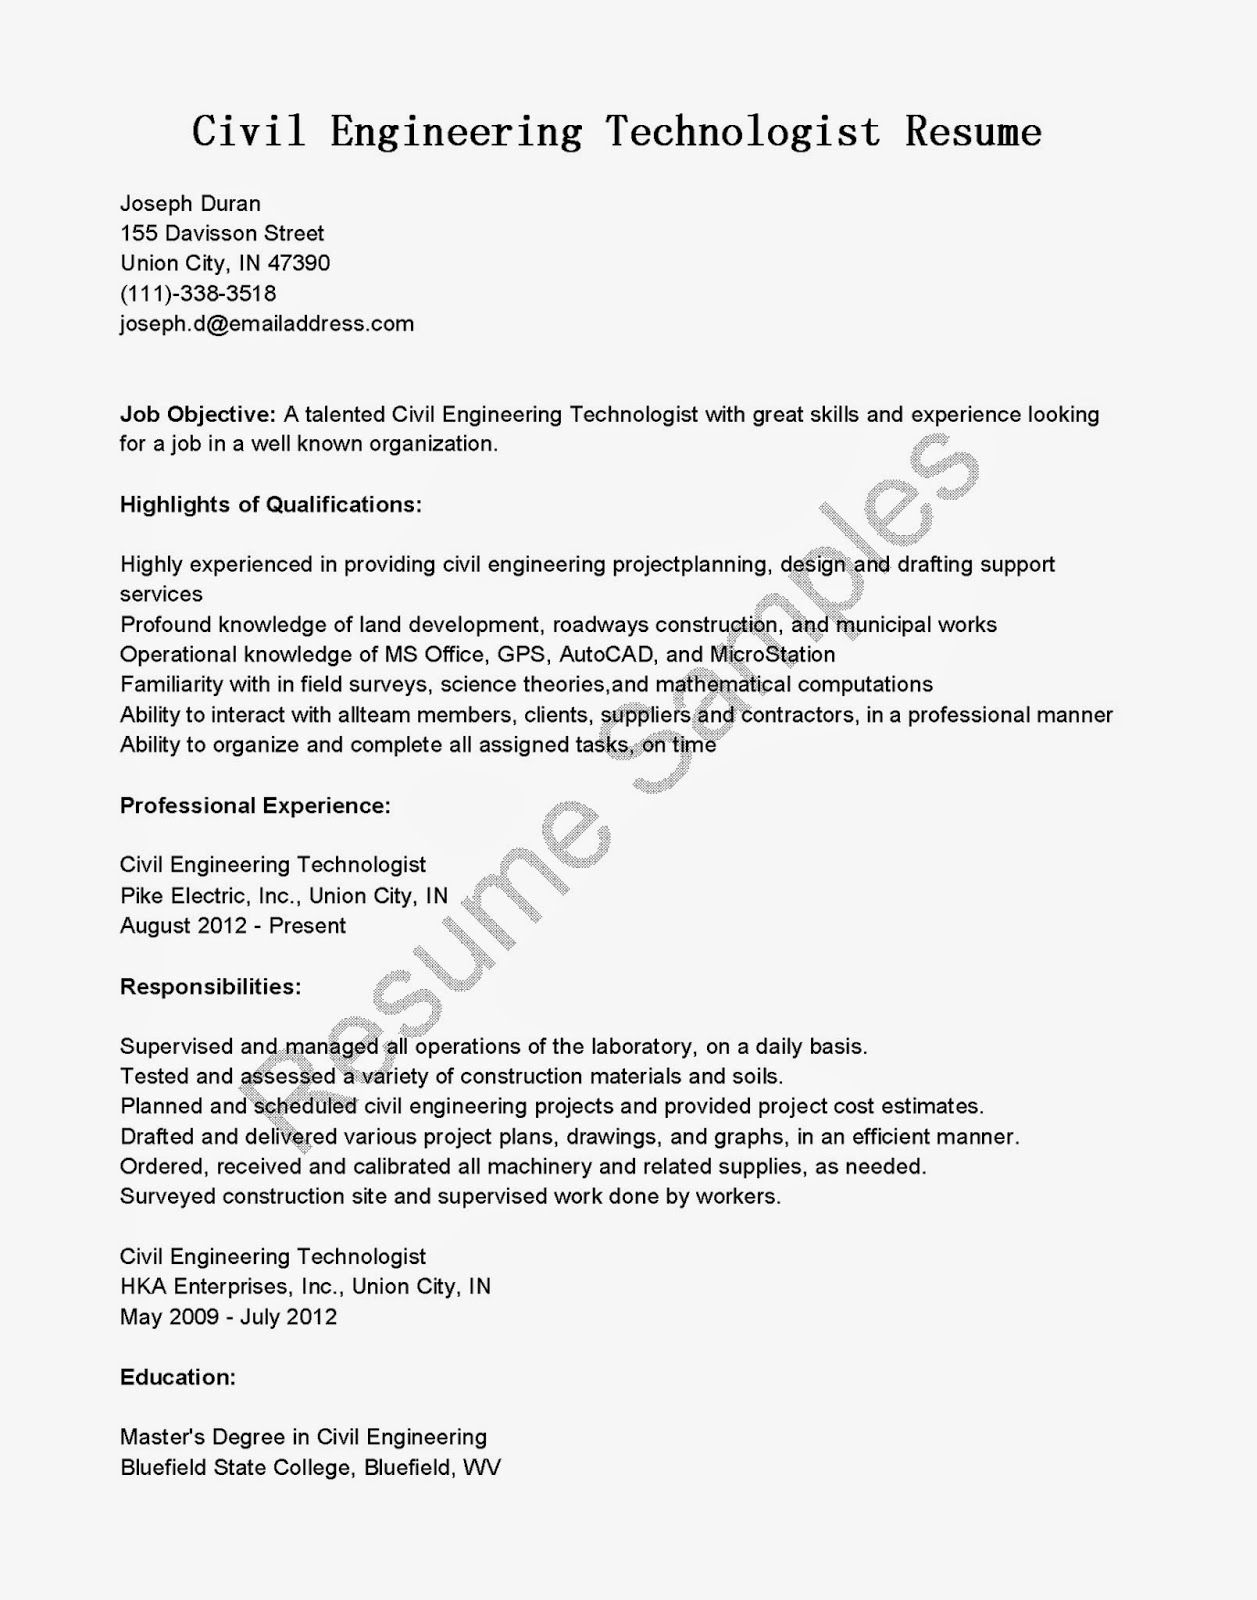 civil engineering technologist resume